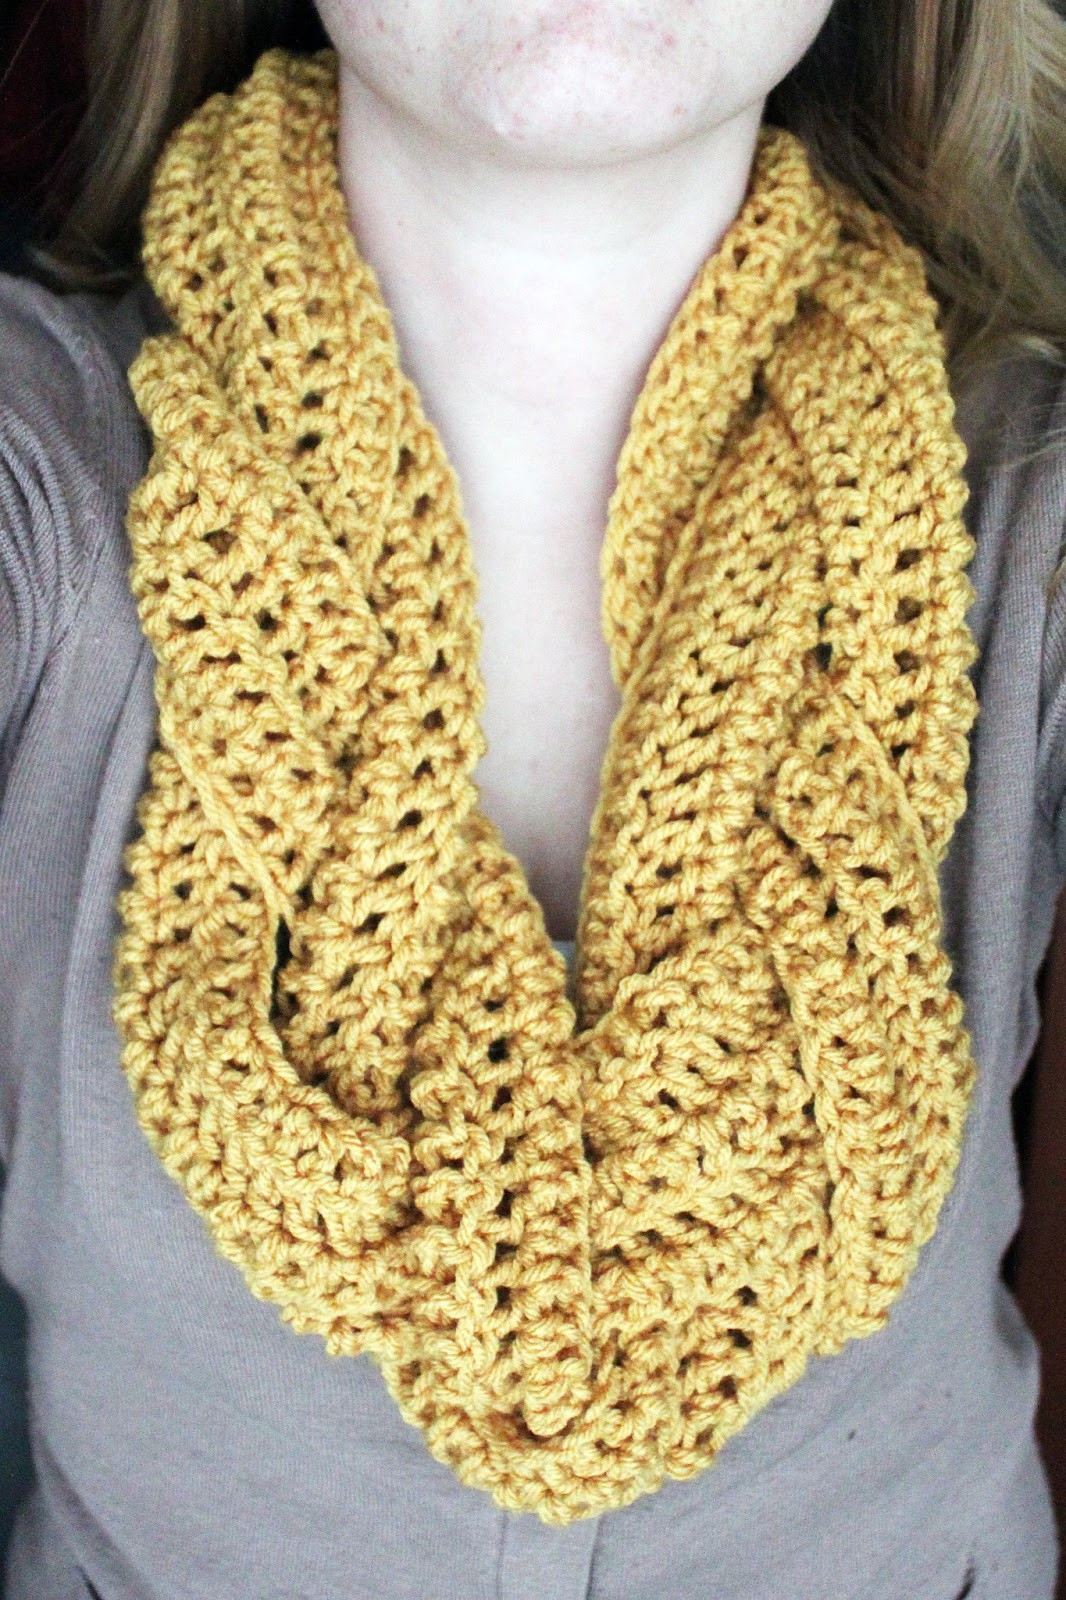 Best Of Rookie Crafter Braided Crocheted Scarf Crochet Stitches for Scarves Of Gorgeous 48 Ideas Crochet Stitches for Scarves